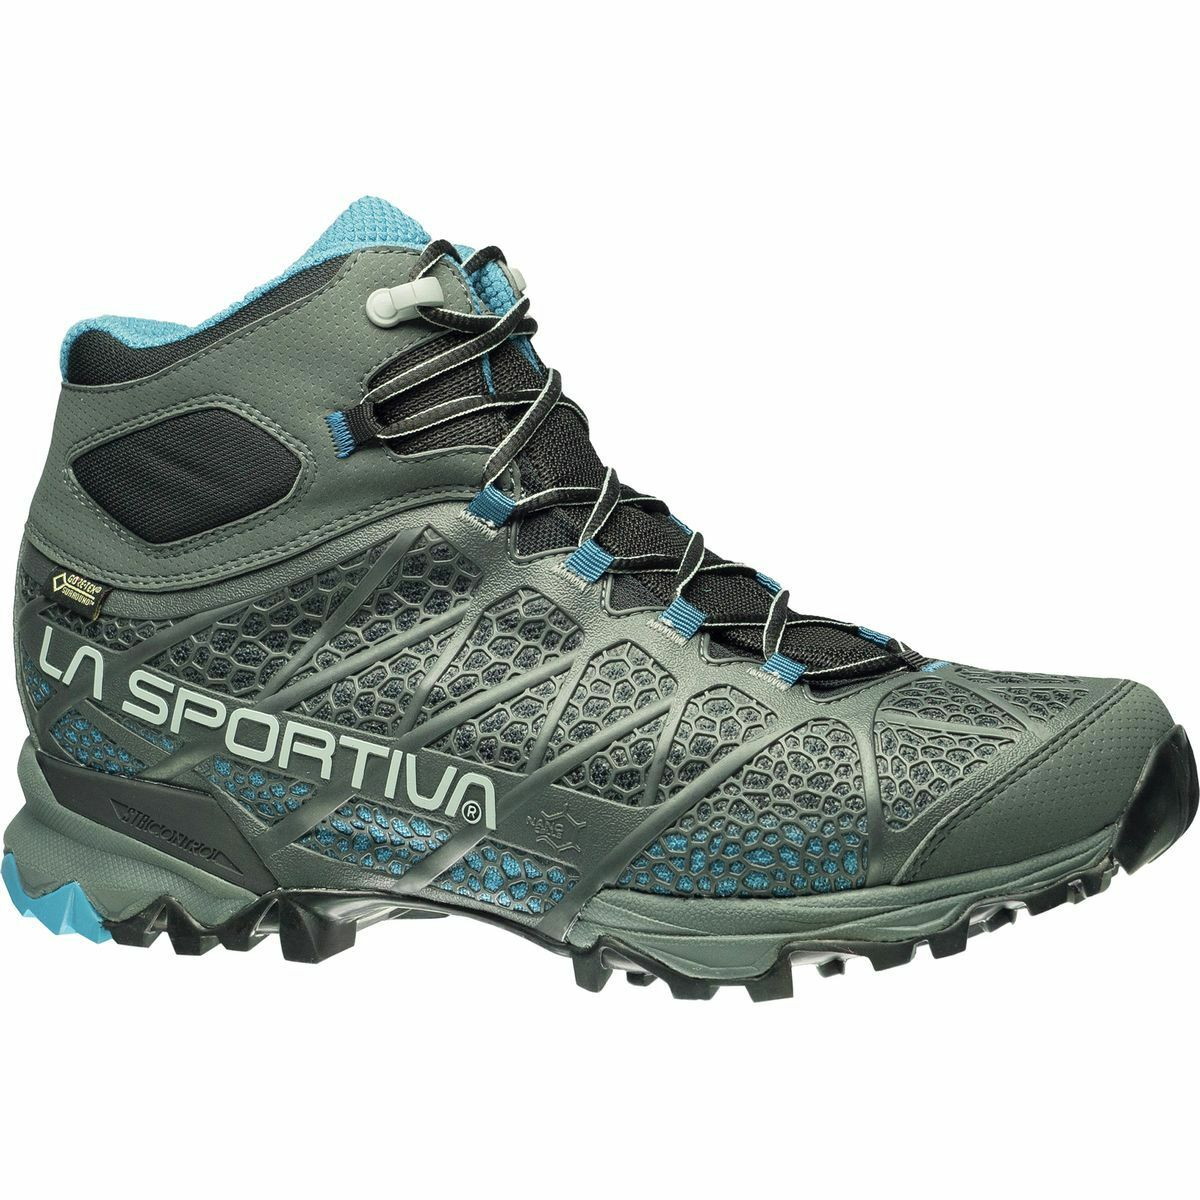 50% OFF RETAIL La Sportiva Core High GTX Hiking Boot Mens US 6 GORE-TEX